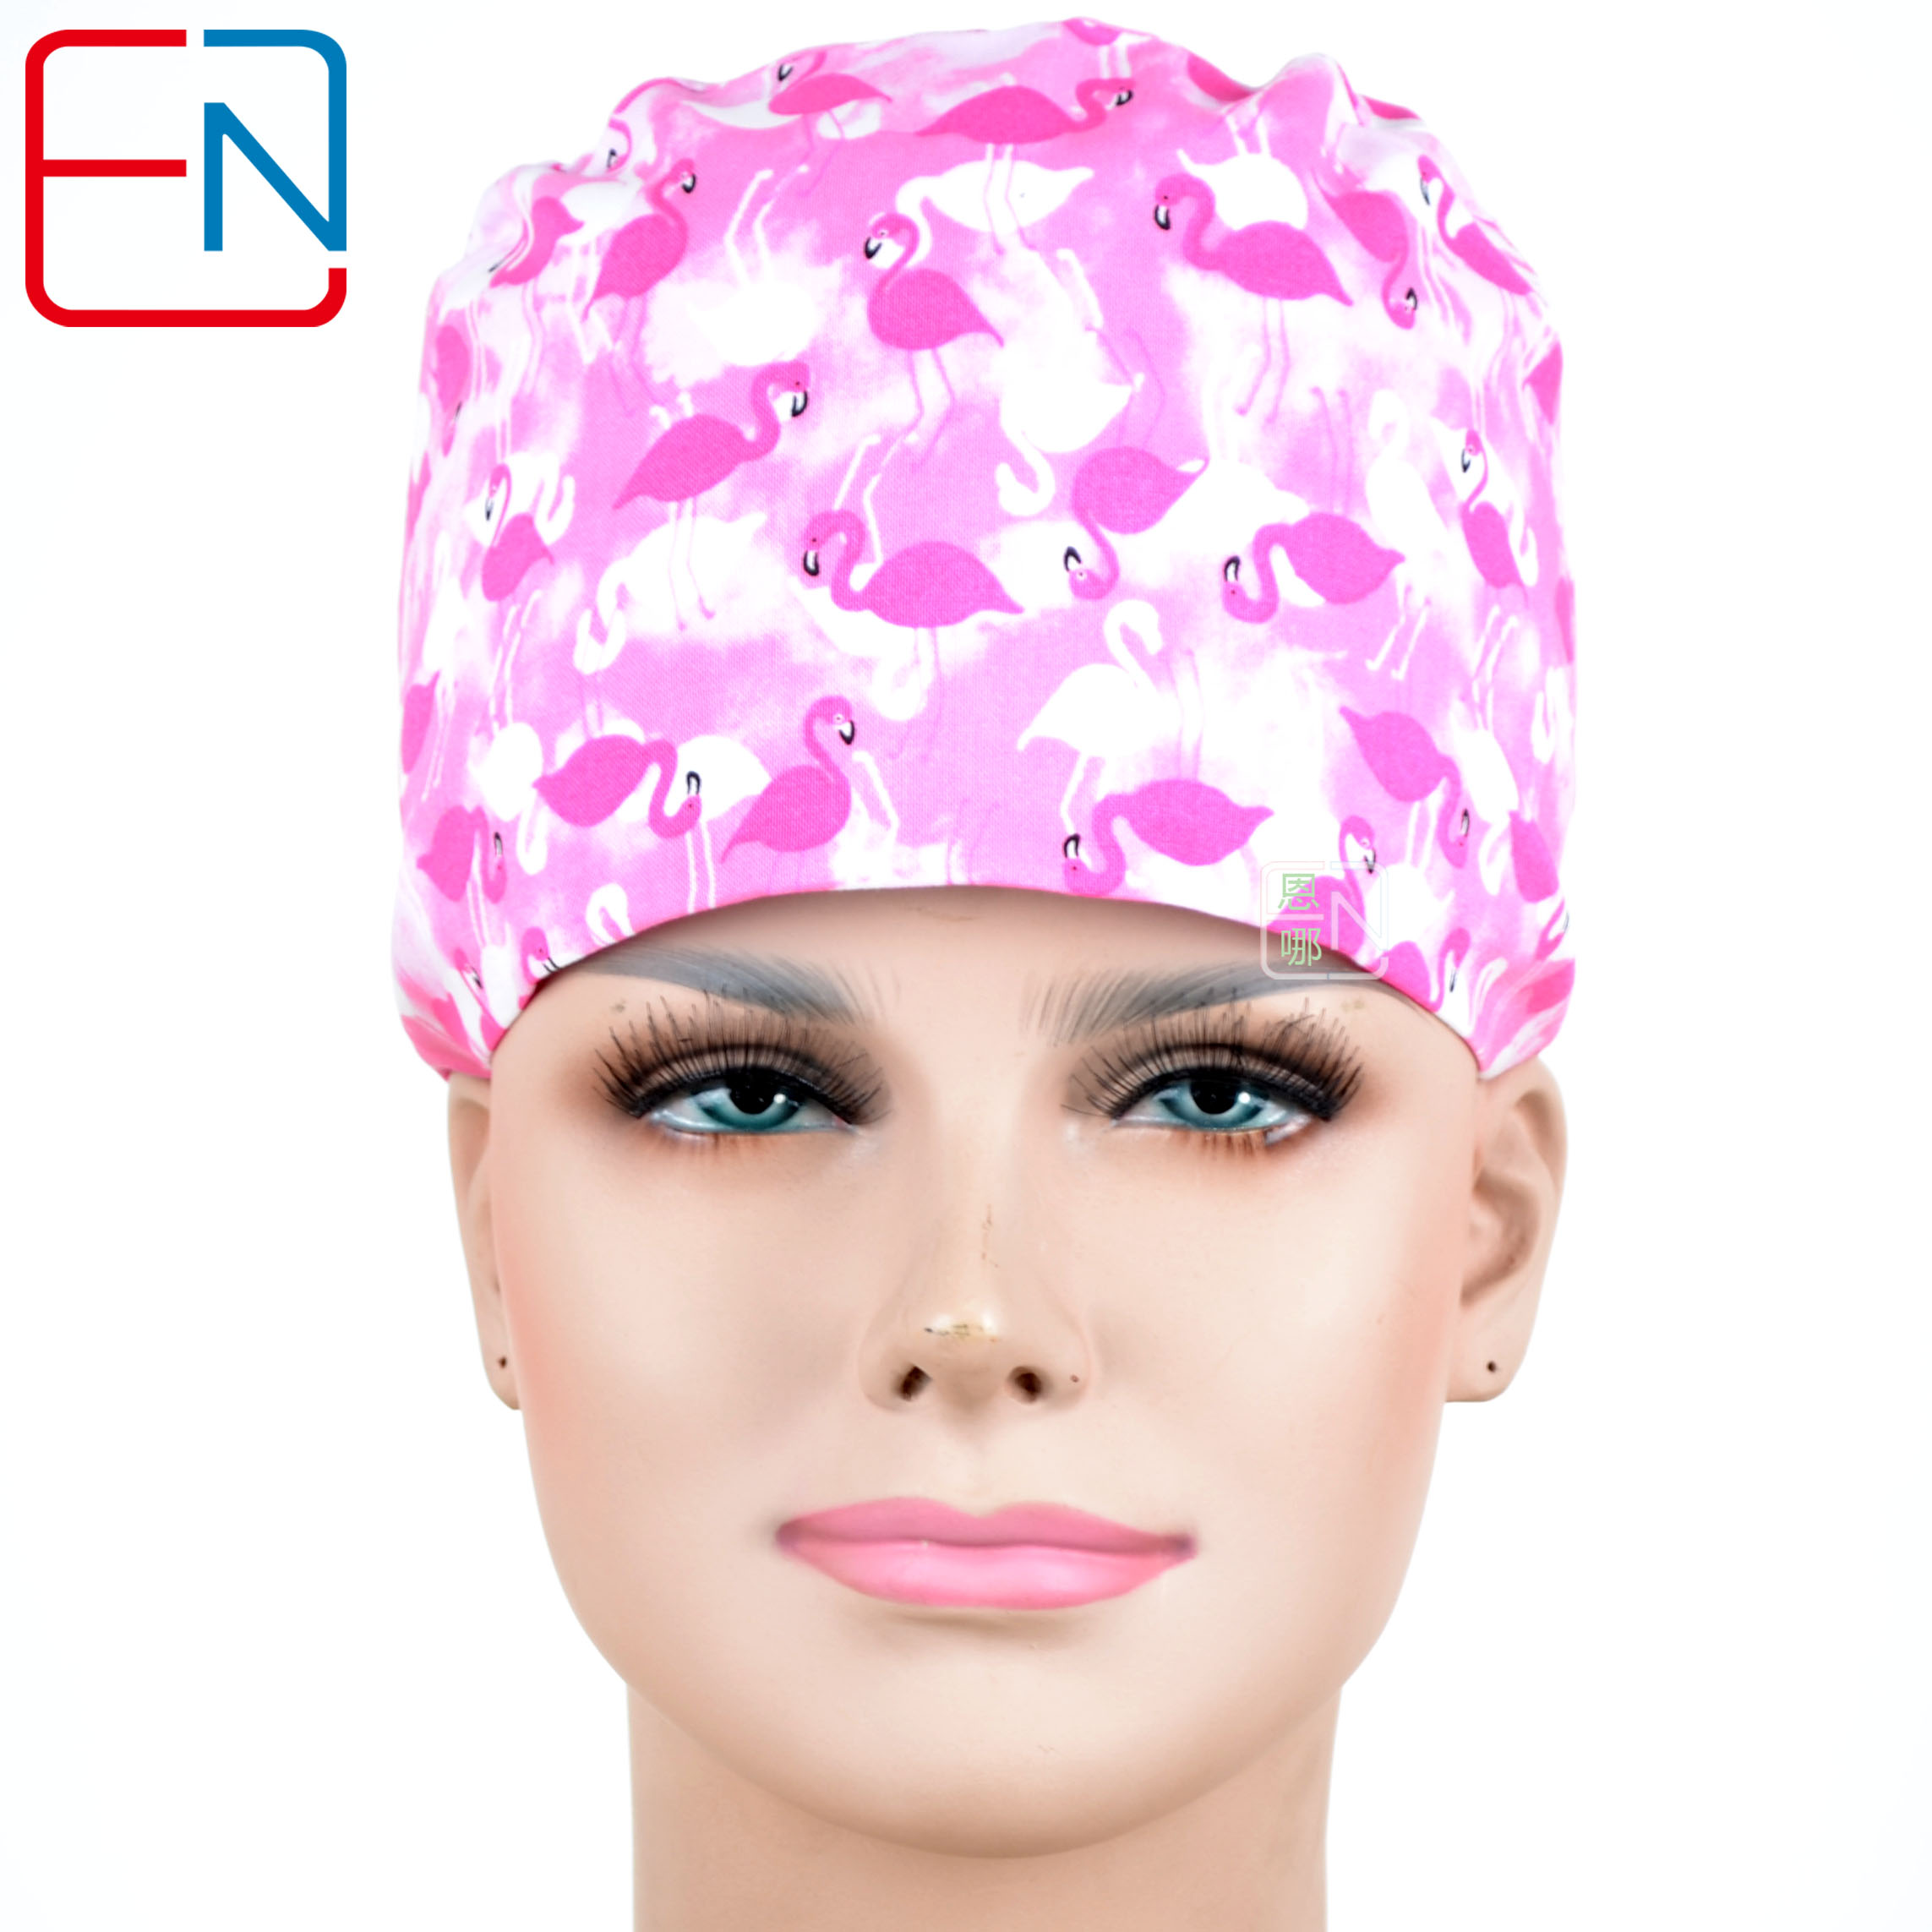 Surgical Caps Surgery Cap  Surgical Hats Medical Caps For Men And Women Scrub Caps